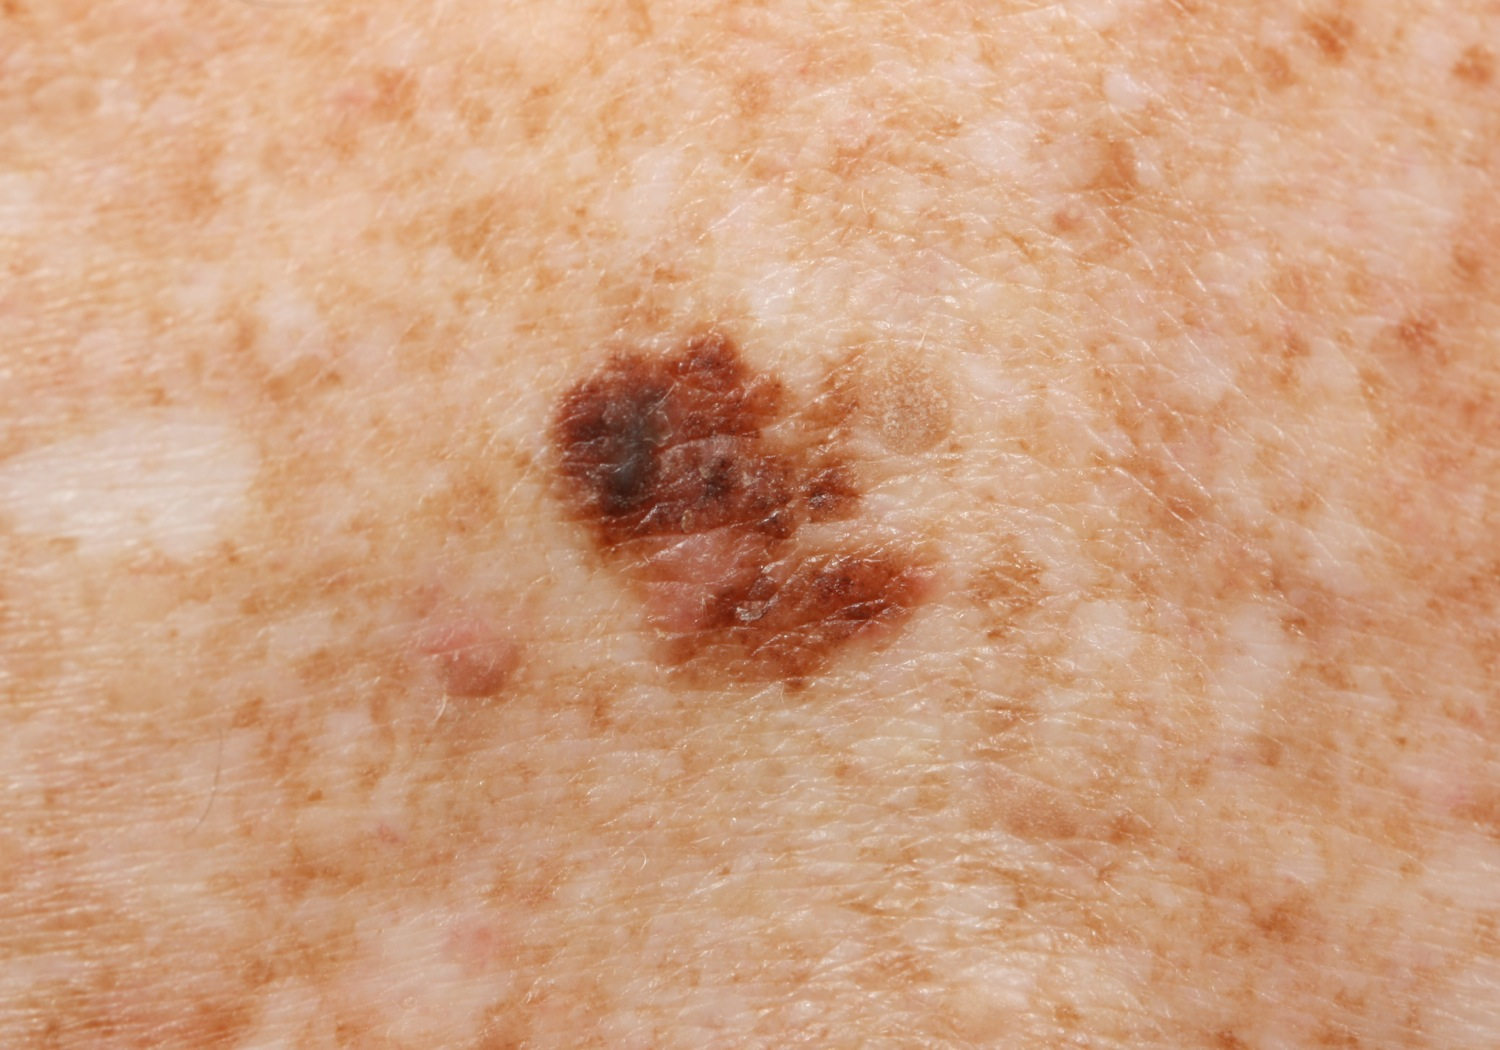 Superficial Spreading Melanoma Pictures Pictures Photos